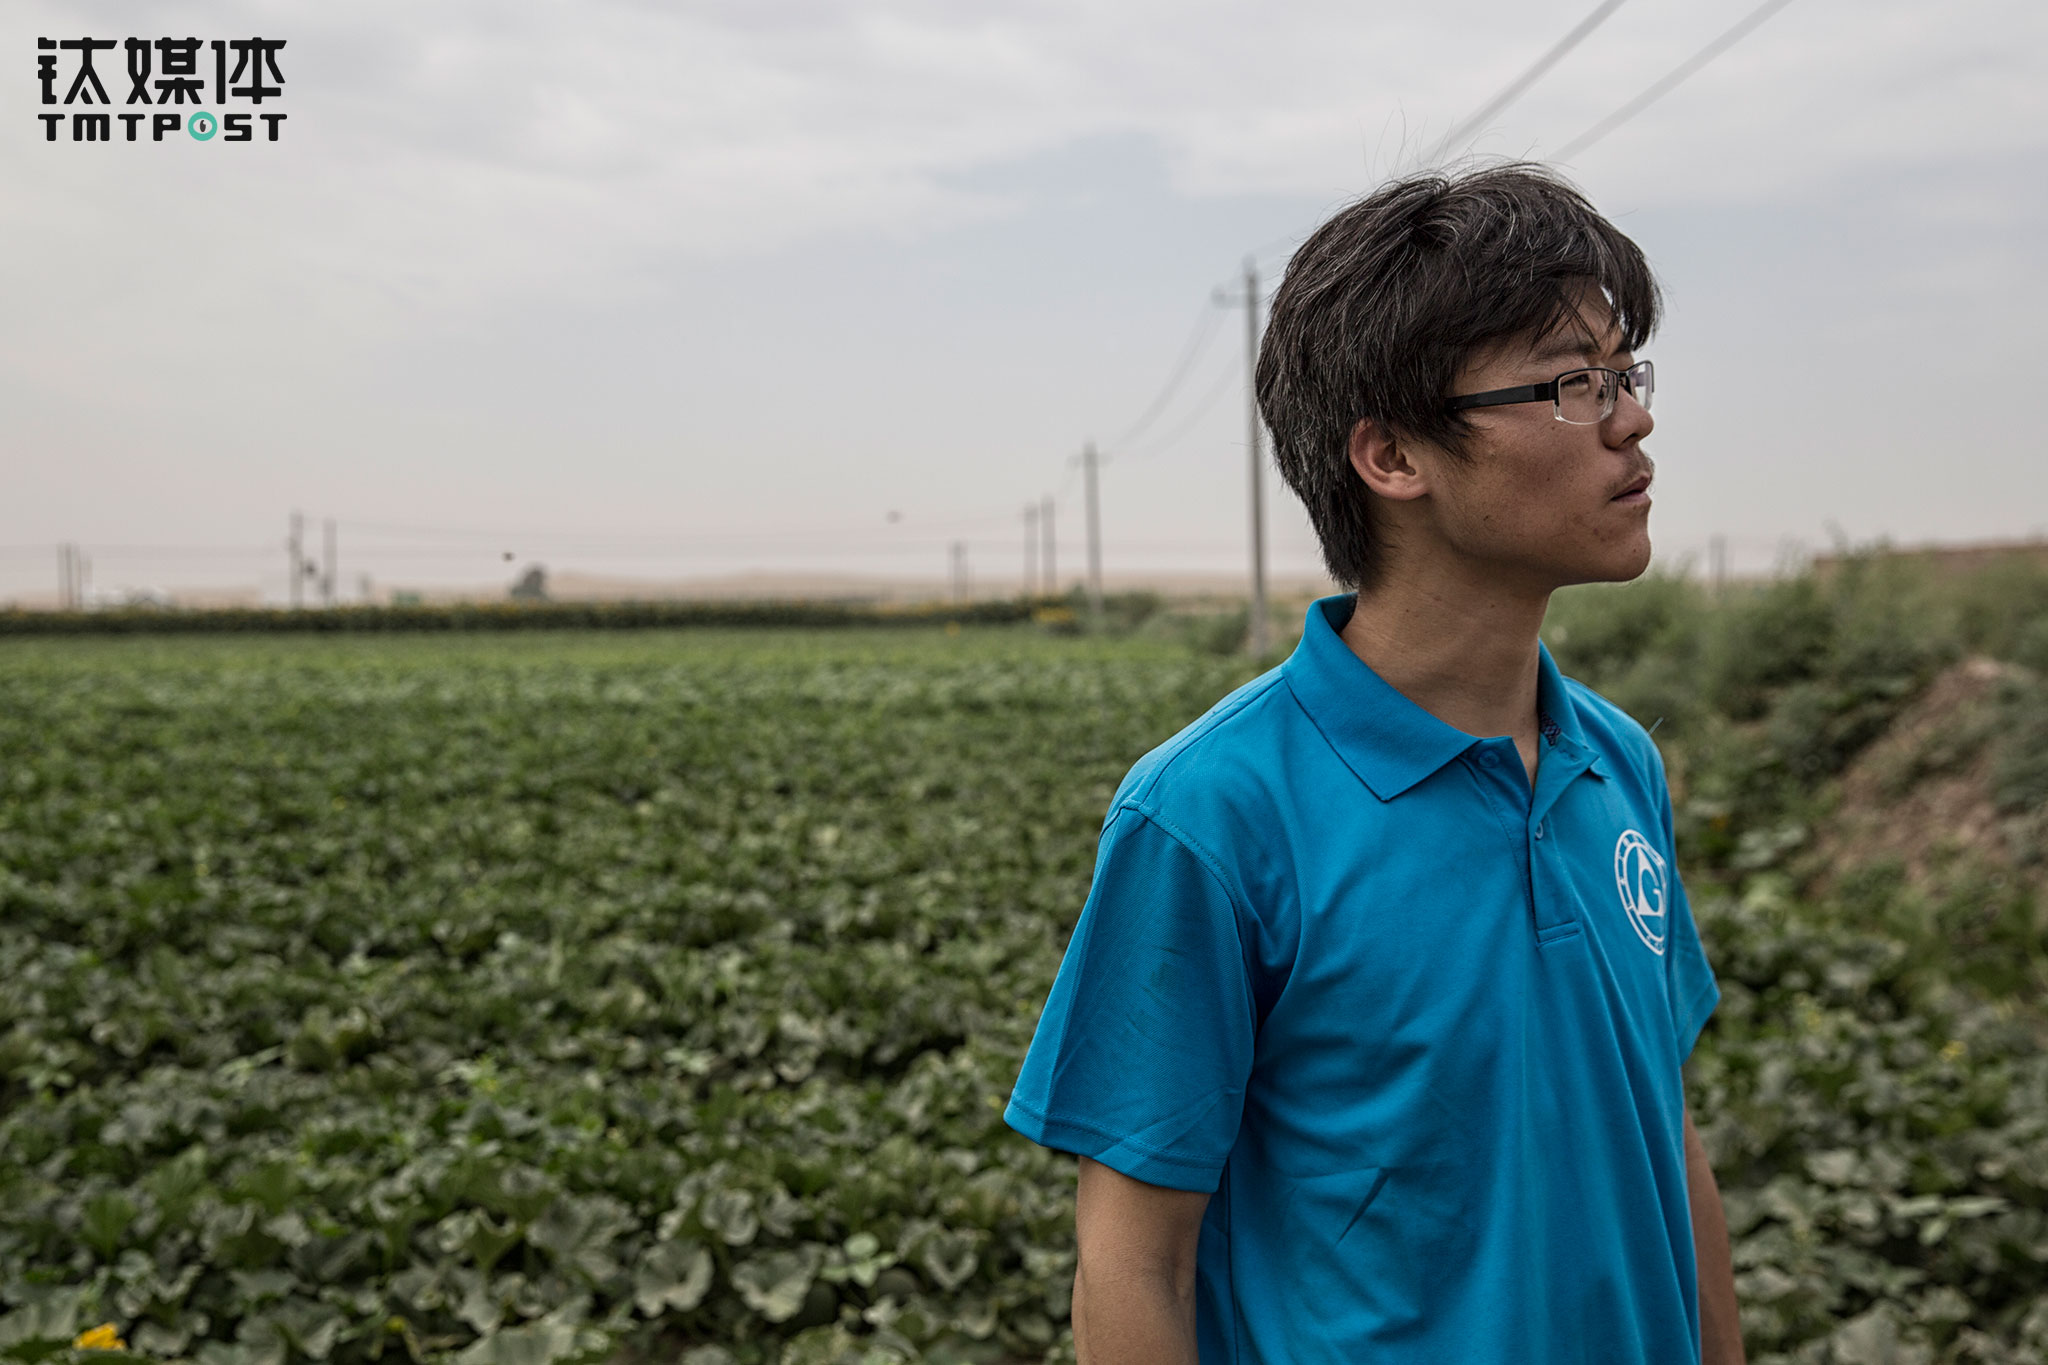 """I will be graduating in three years and will start working. Then my father won't have to work on the farm,"" Li Sheng believed that his home has great melons many diligent people, and therefore there must be development potential. ""If I had the power in the future, I would come back to build roads and grow trees. I want to make my home's environment better to let more people know this place better. I want to attract more people to our home, young people like me to come back and build their home."""